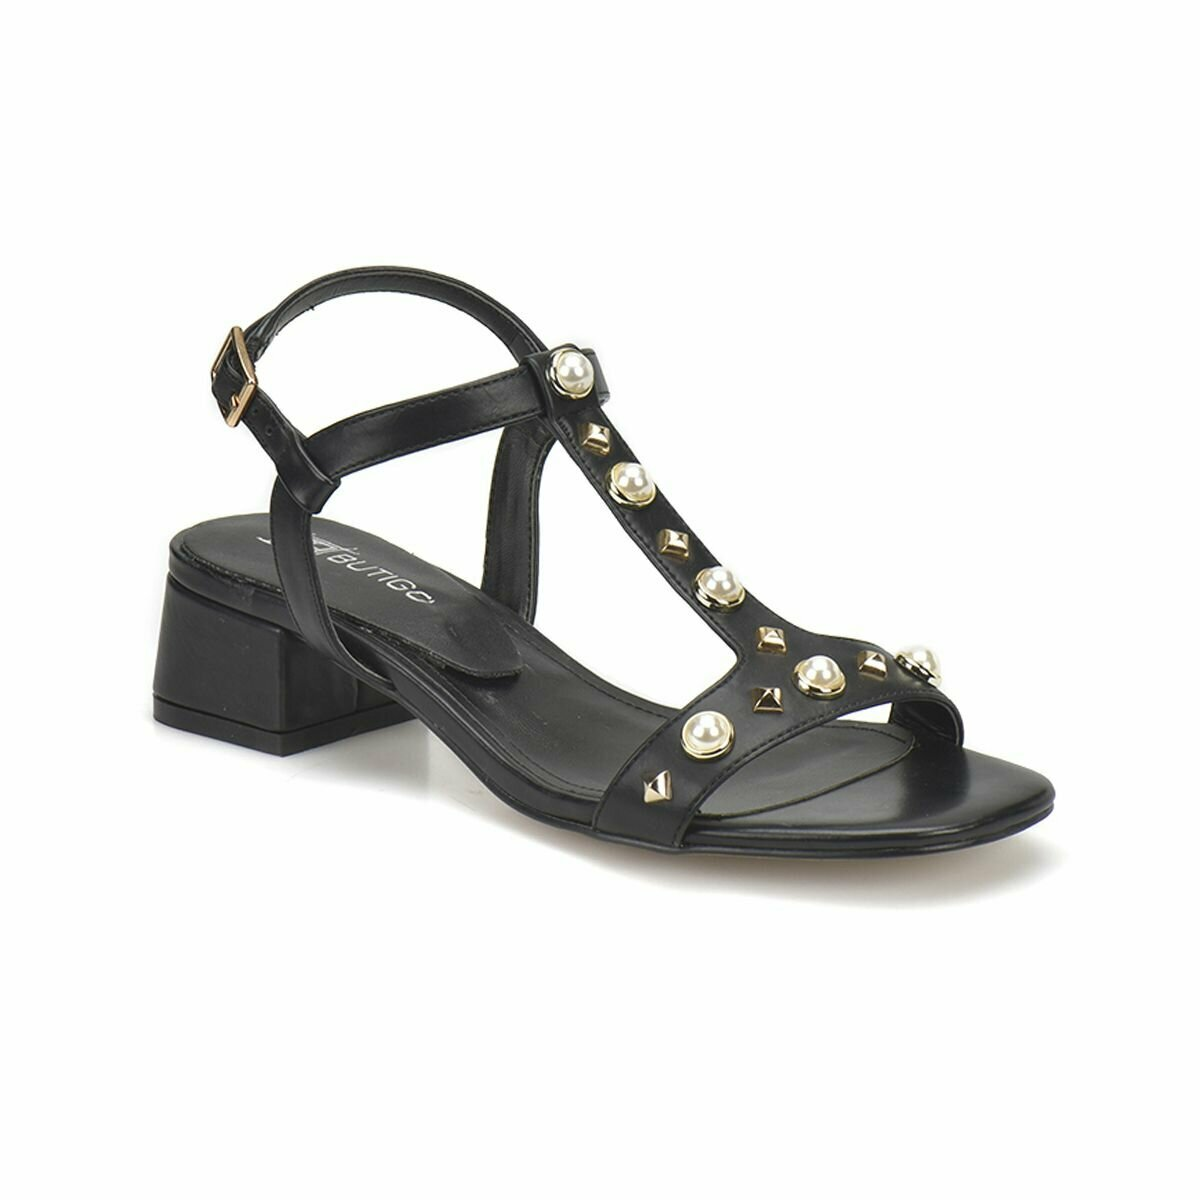 FLO 18S-8Y5026-50 Black Women Shoes BUTIGO